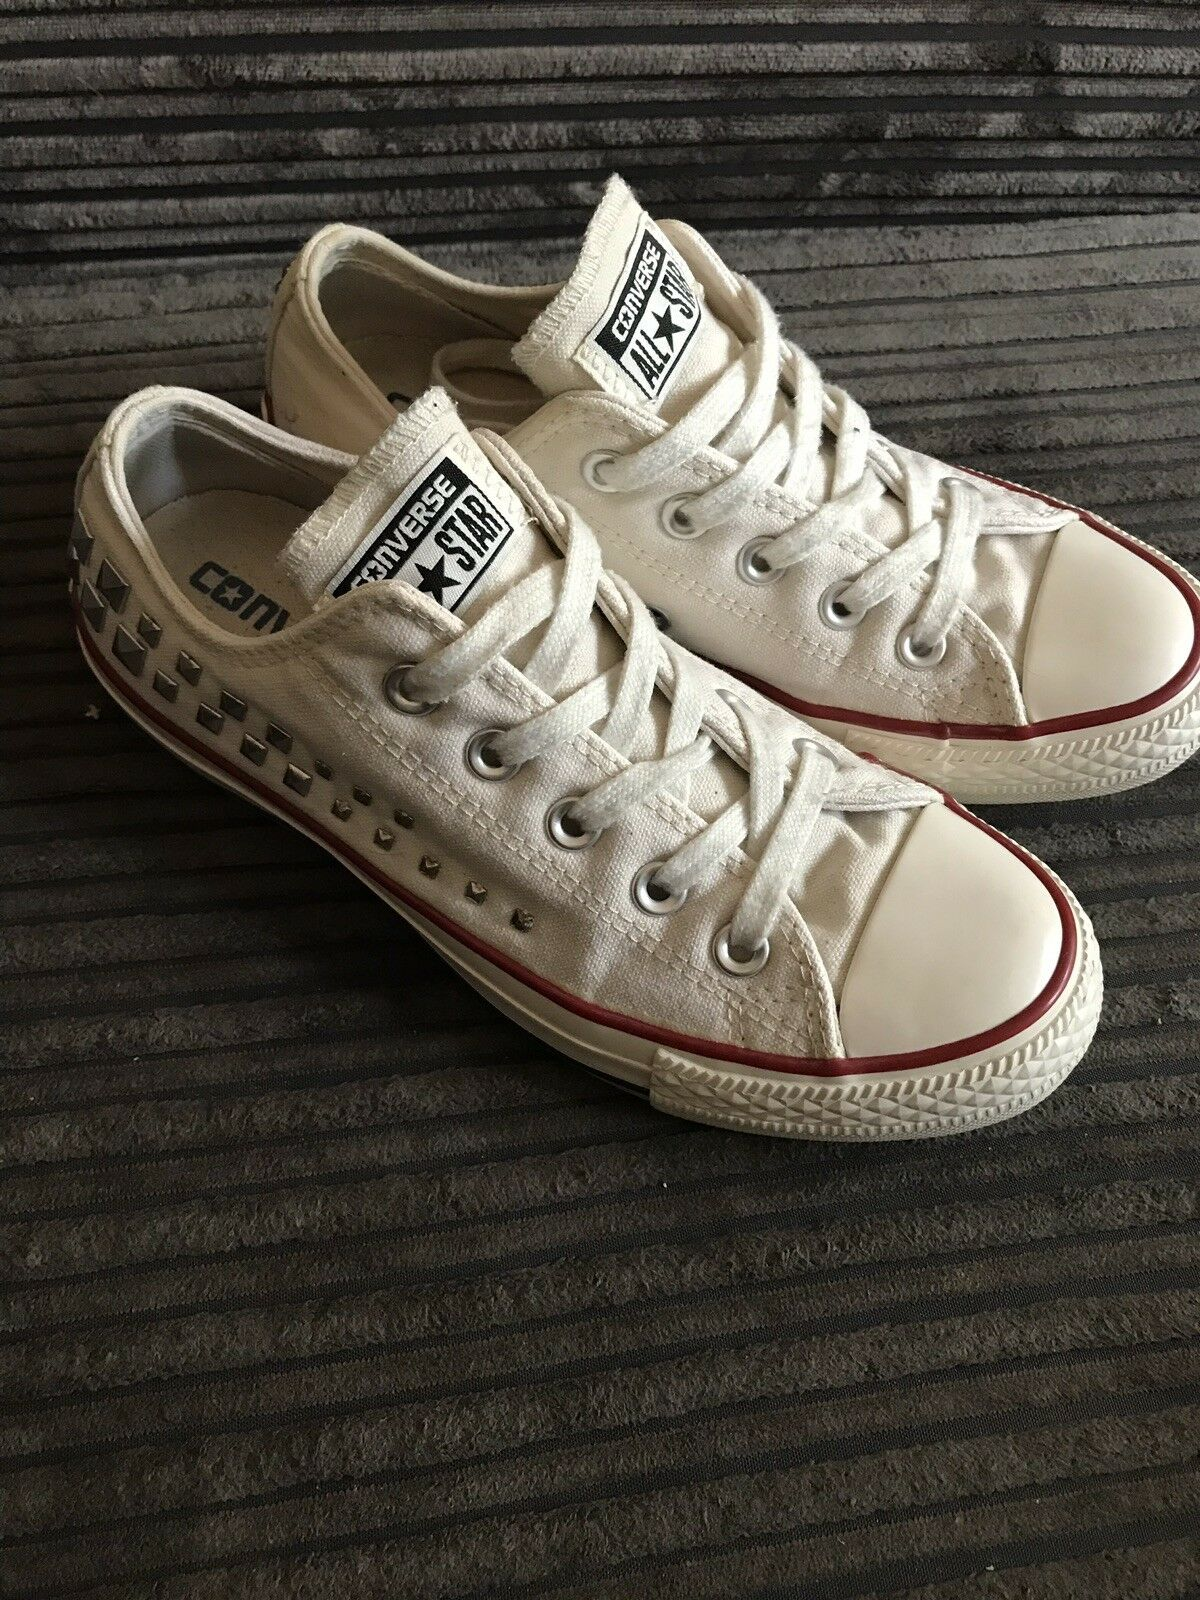 Womens Converse Trainers, Size 4, Studded Design, Vgc And Authentic